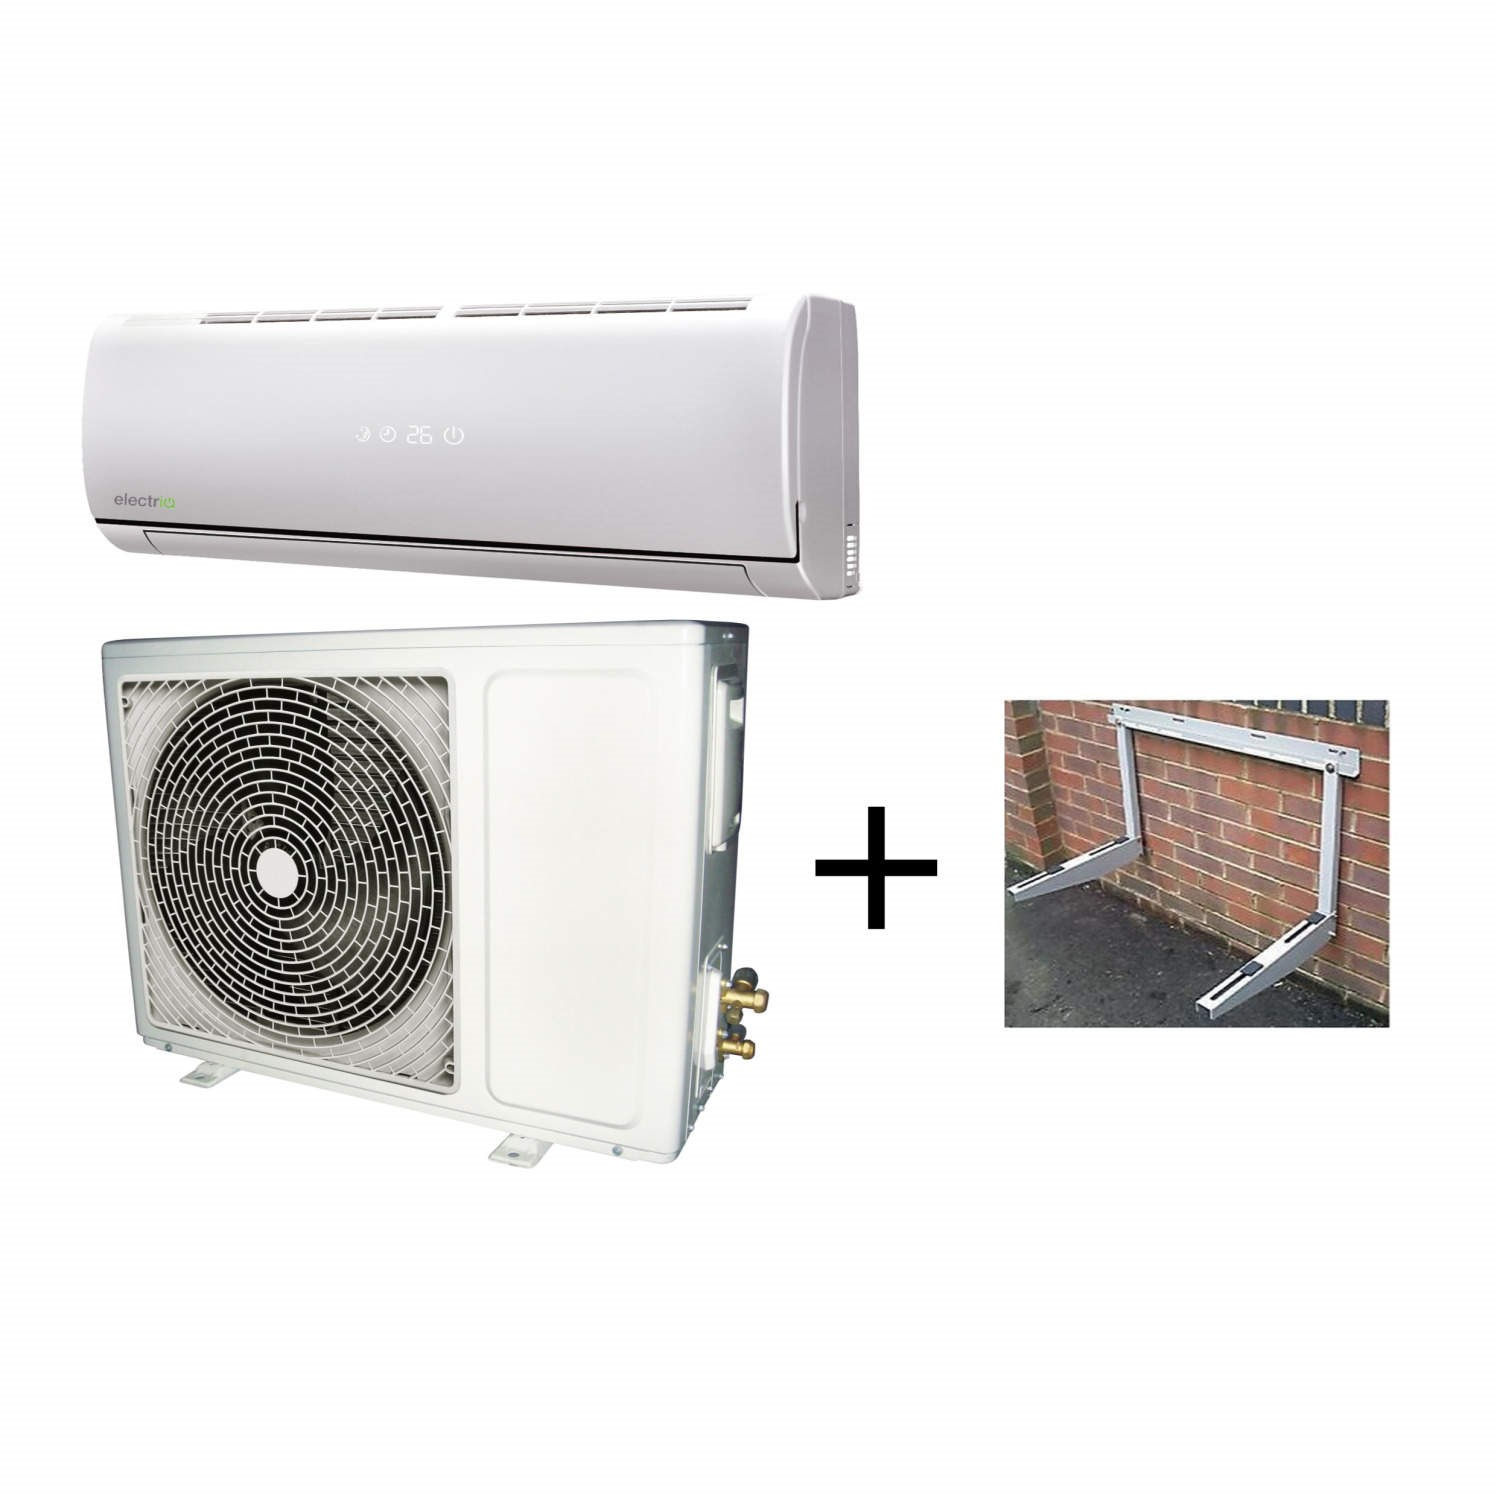 Electriq 12000 Btu Easy Fit Inverter Wall Split Air